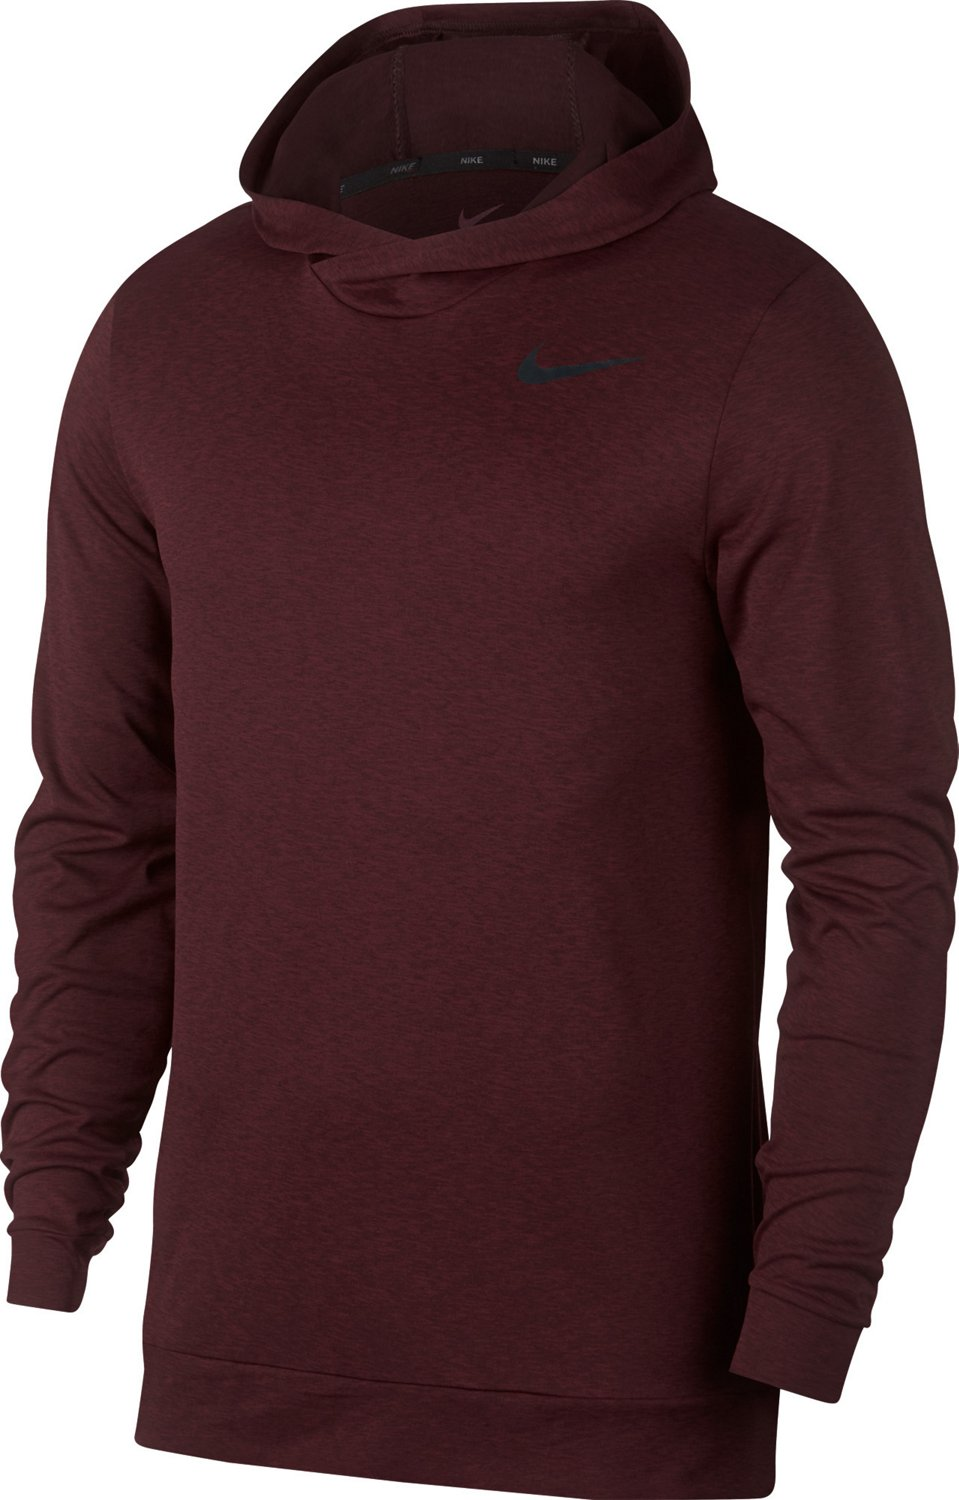 c4193f9695cb Display product reviews for Nike Men s Breathe Training Hoodie